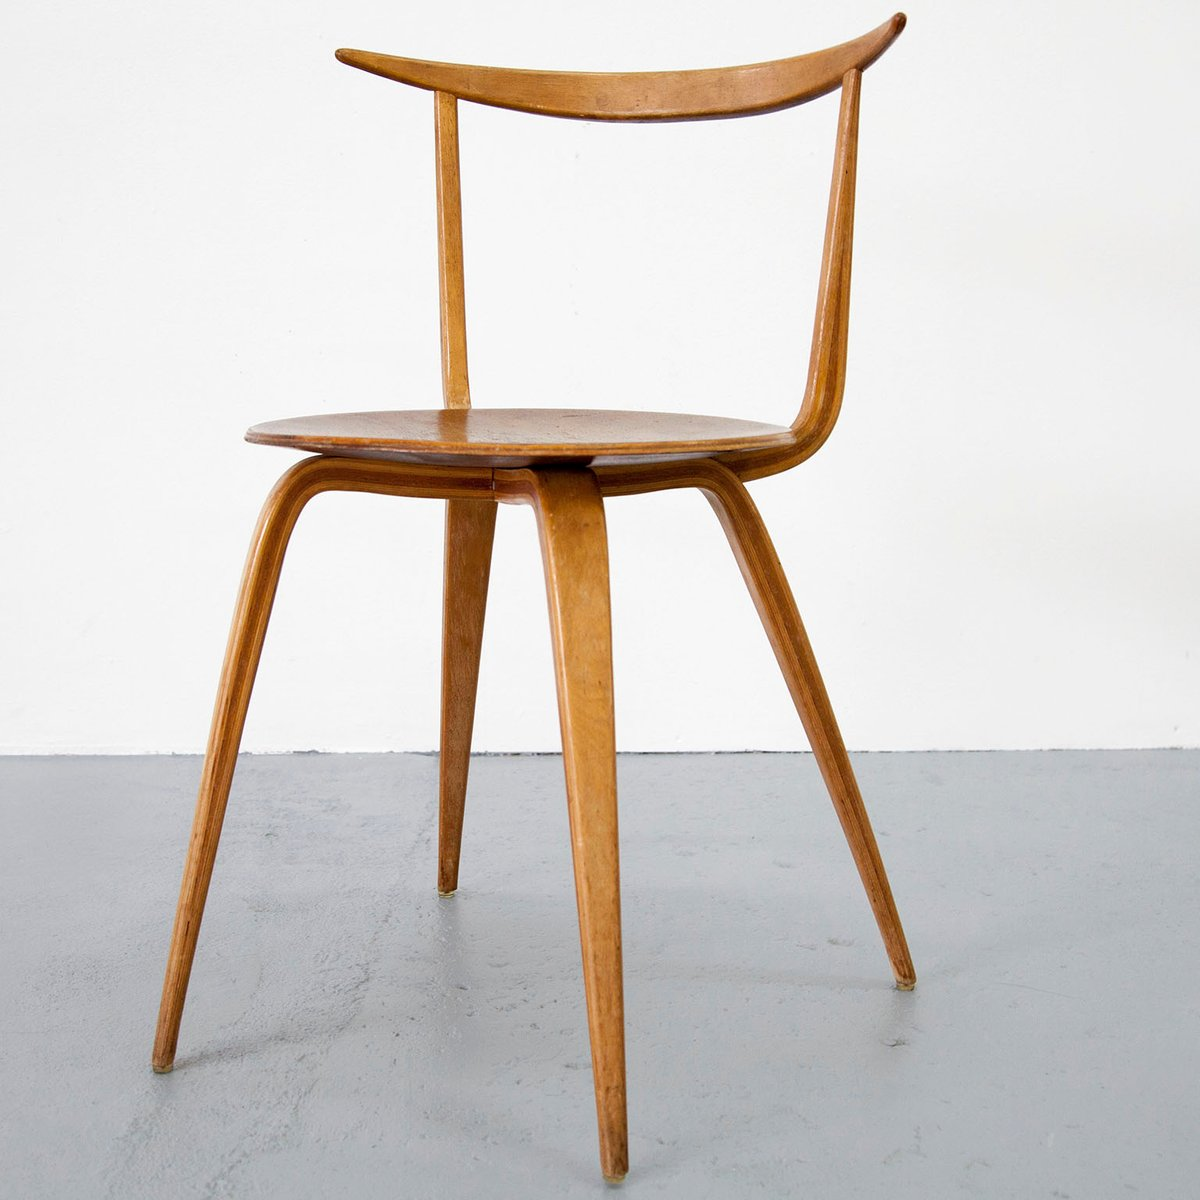 Early Version Pretzel Chair By George Nelson, 1950s For Sale At Pamono